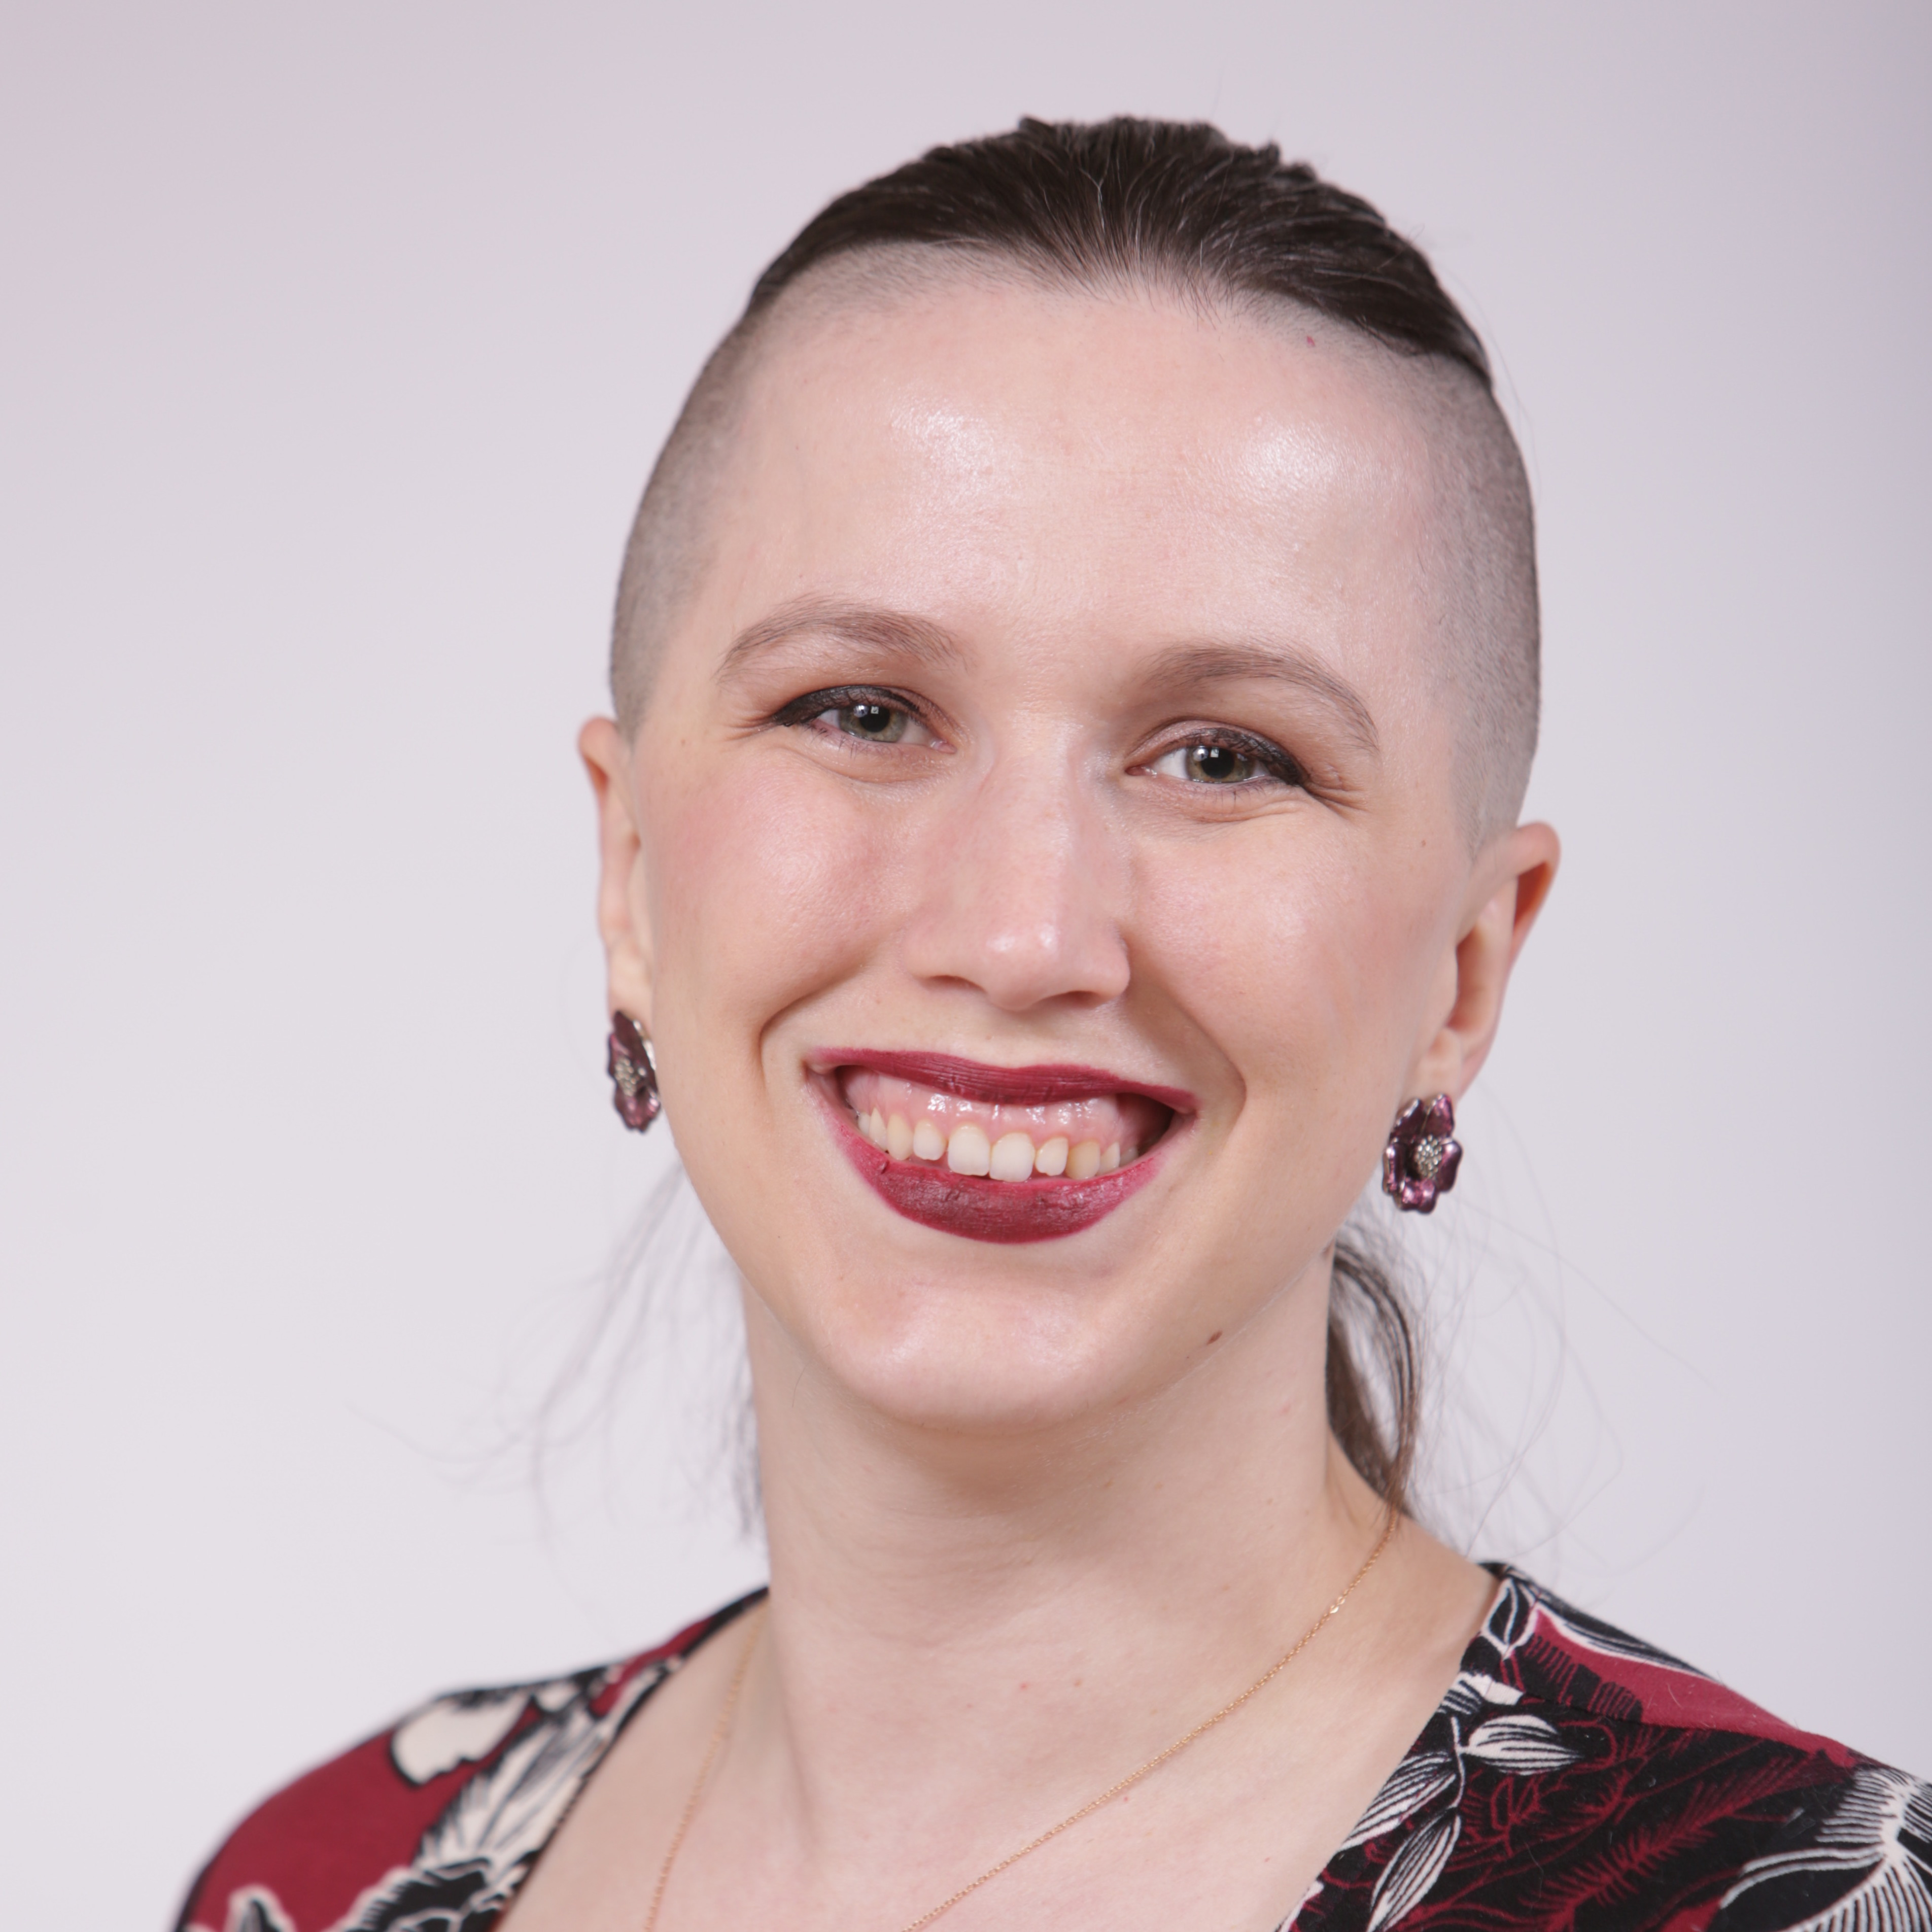 Christea  is smiling against a gray background. The sides of their head are shaved and their brown hair is pulled back into a ponytail, they have light-toned skin, maroon lipstick, silver flower earrings , and a red, white, and black top.